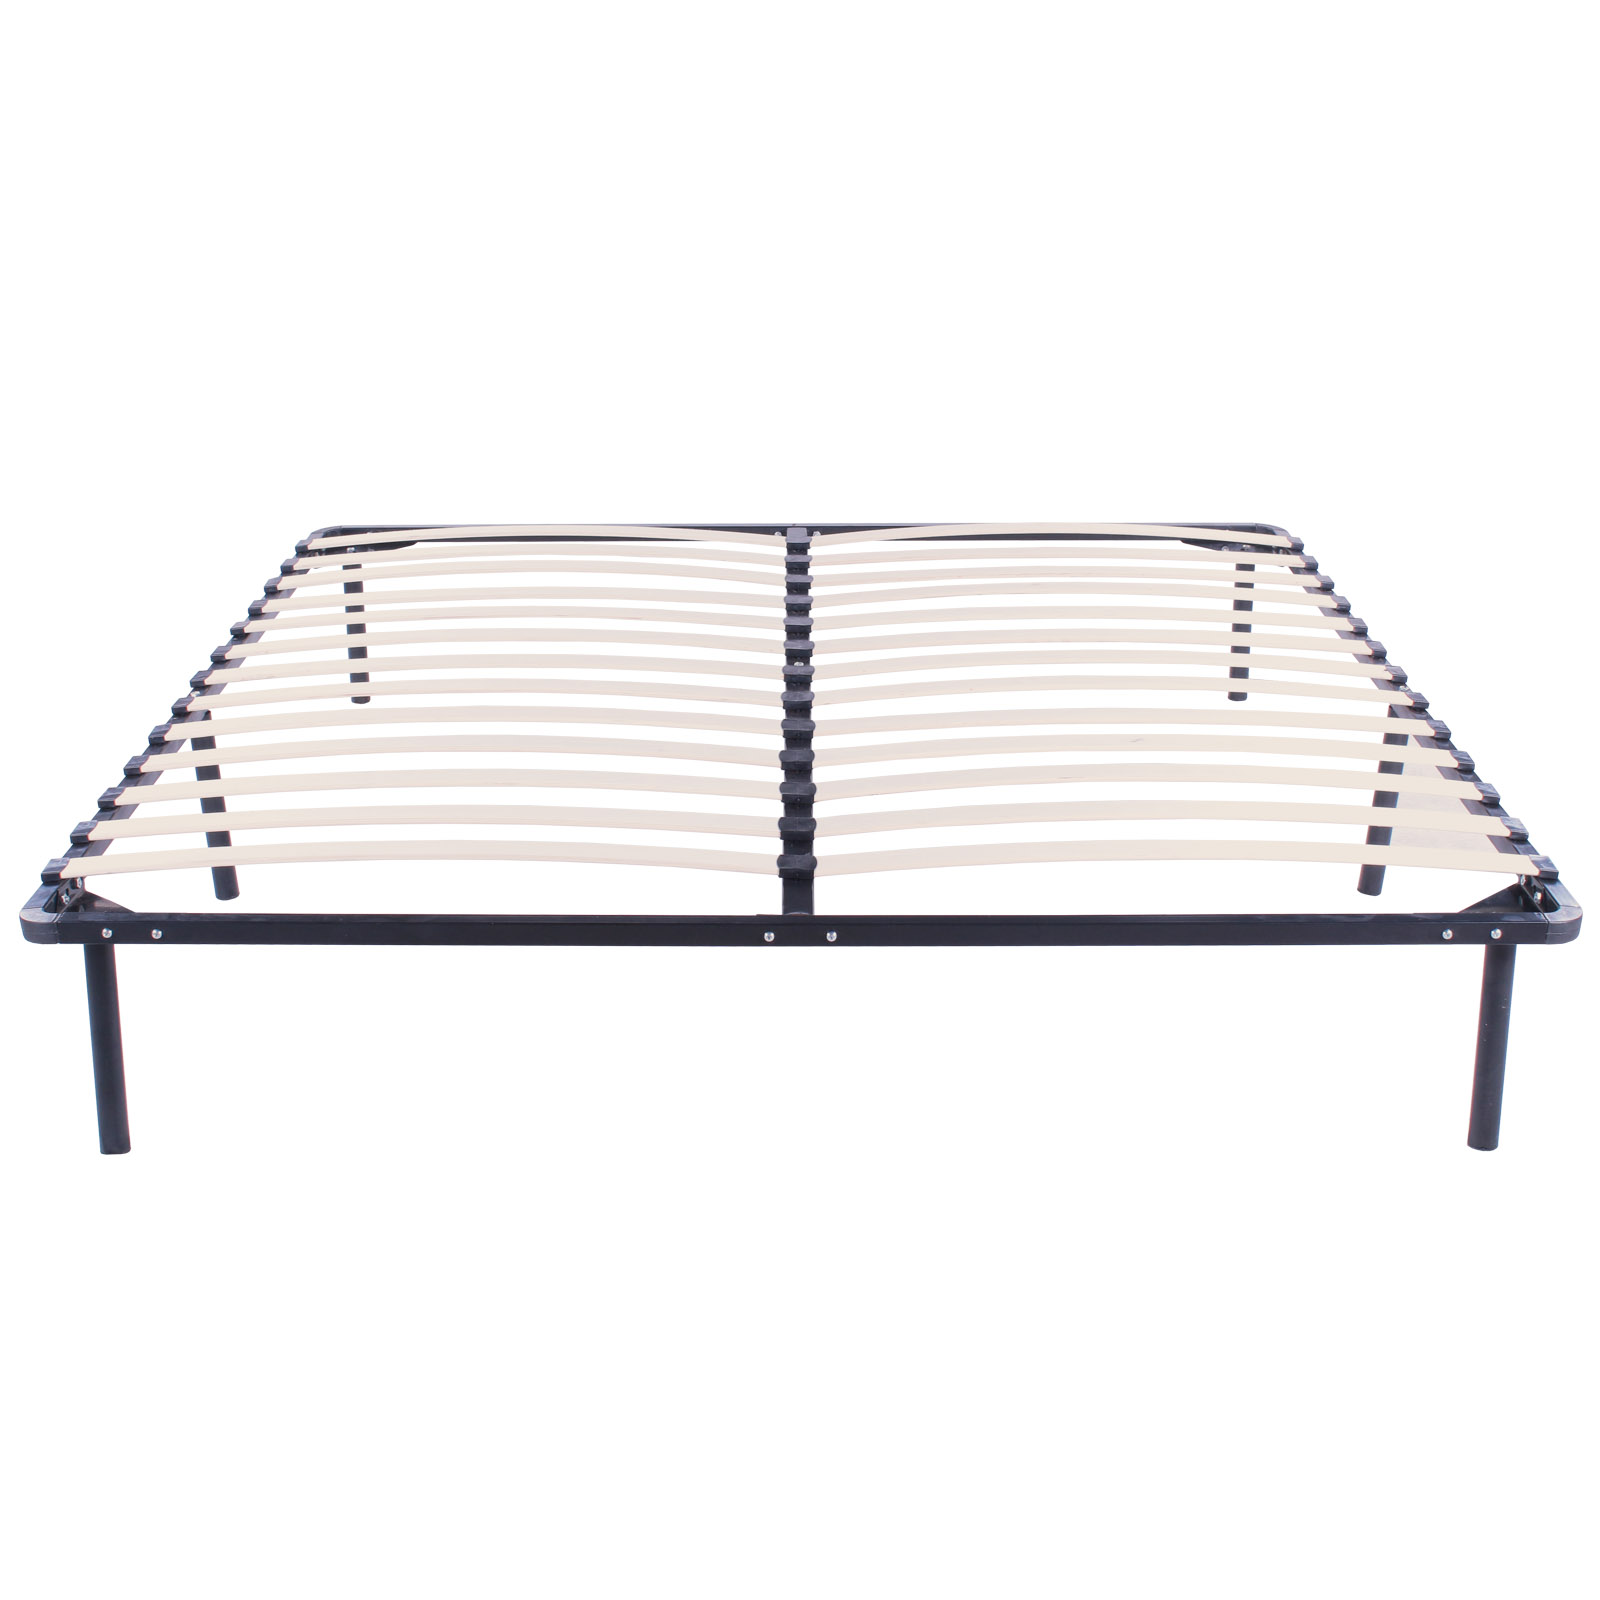 King size wood slats metal bed frame platform bedroom for Wood bed frames for king size beds